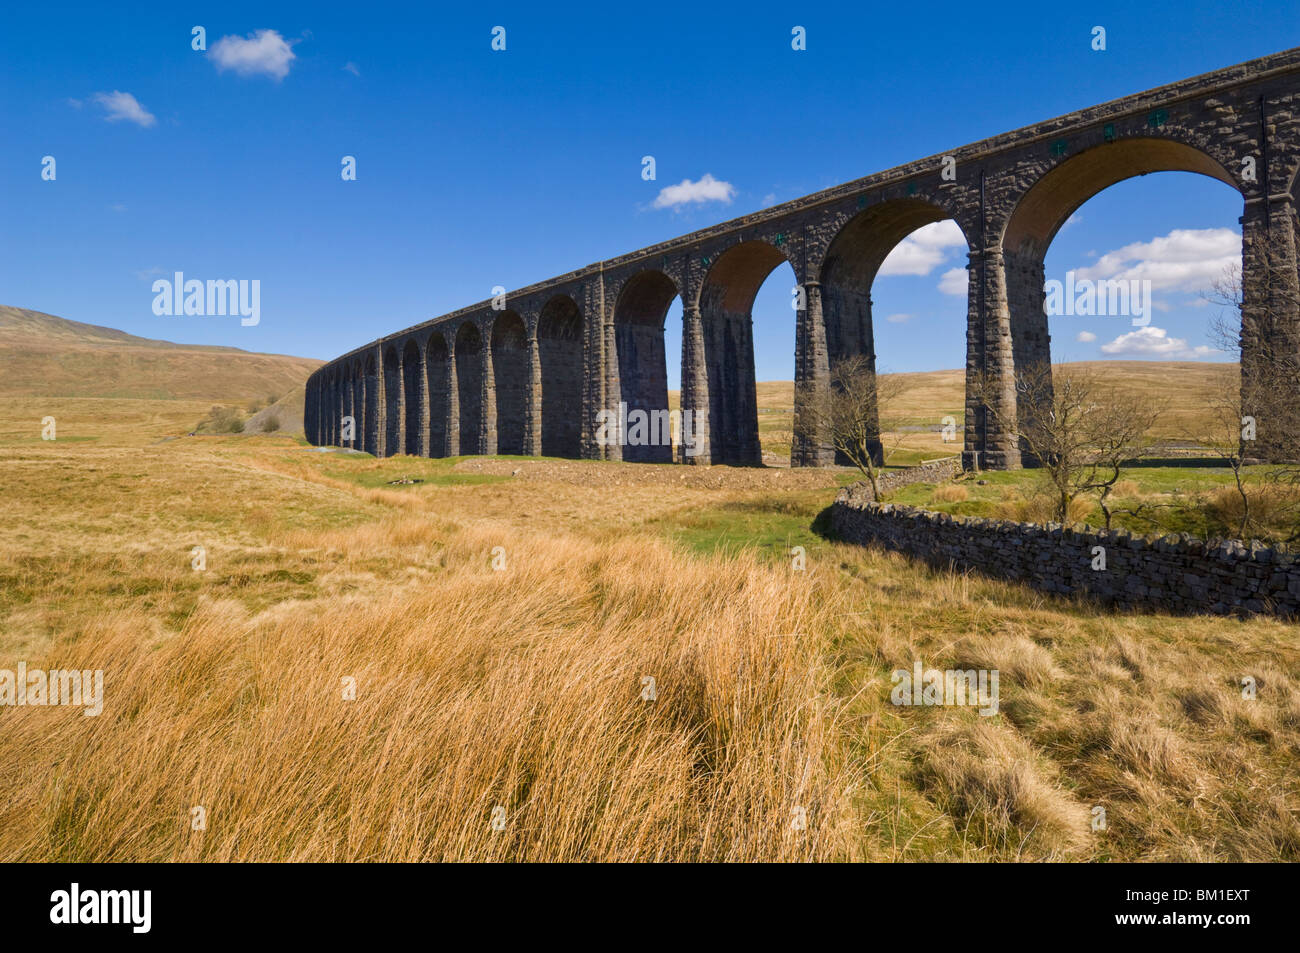 Ribblehead railway viaduct on the Settle to Carlisle rail route, Yorkshire Dales National Park, England, United - Stock Image